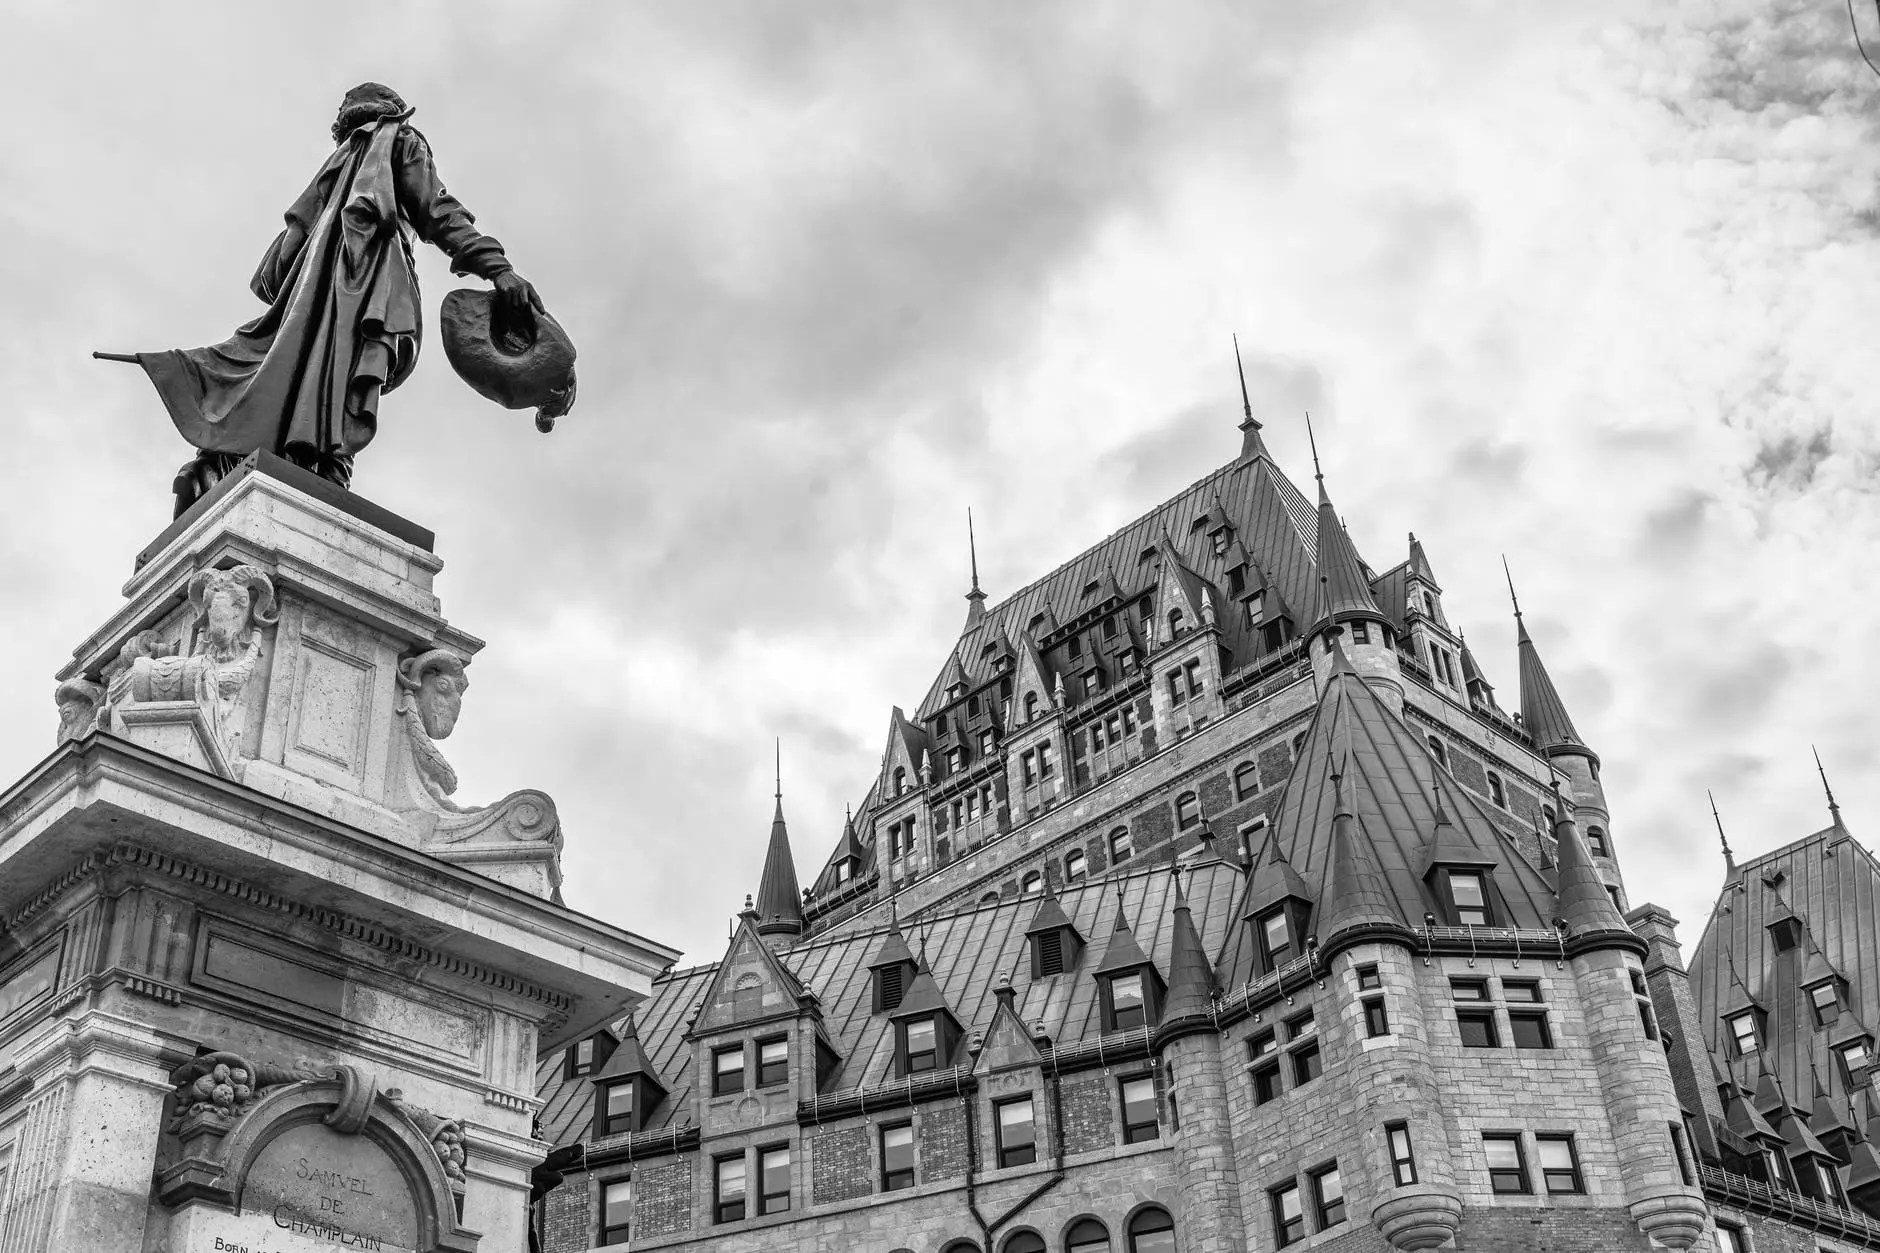 grayscale photo of statue of man on top of building